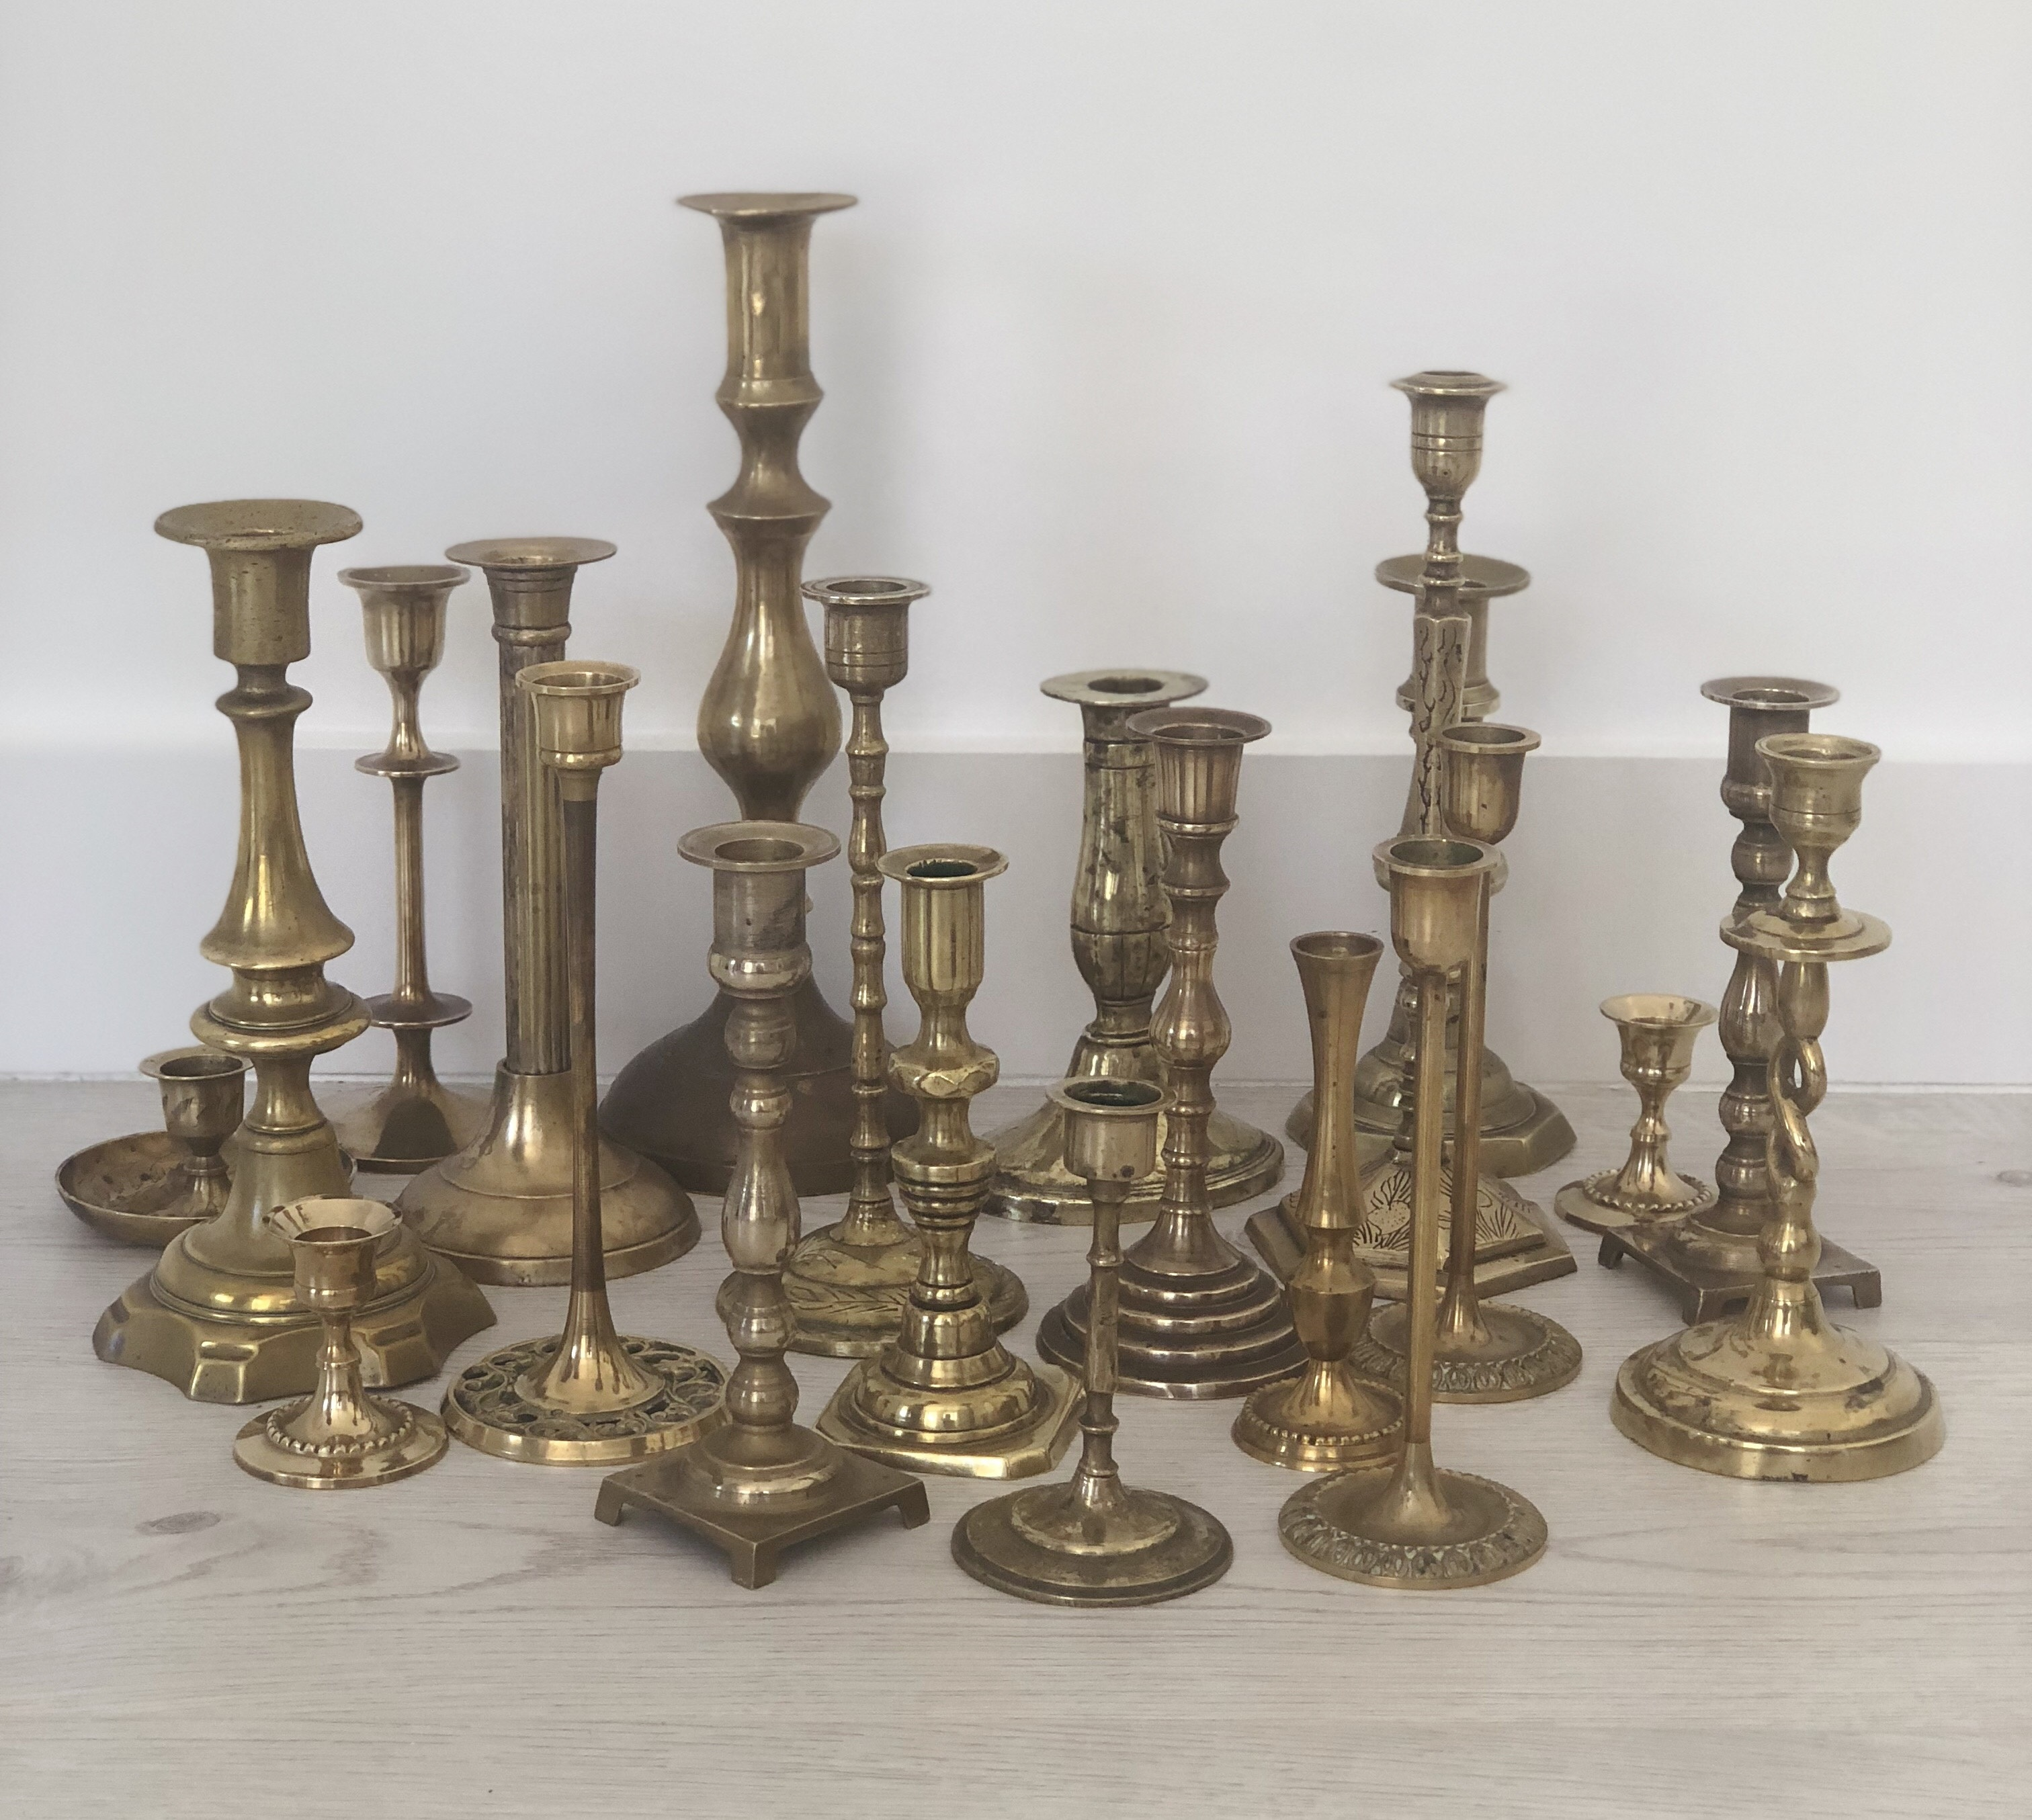 Assorted Brass Candlestick Holders A Day To Remember Event Hire